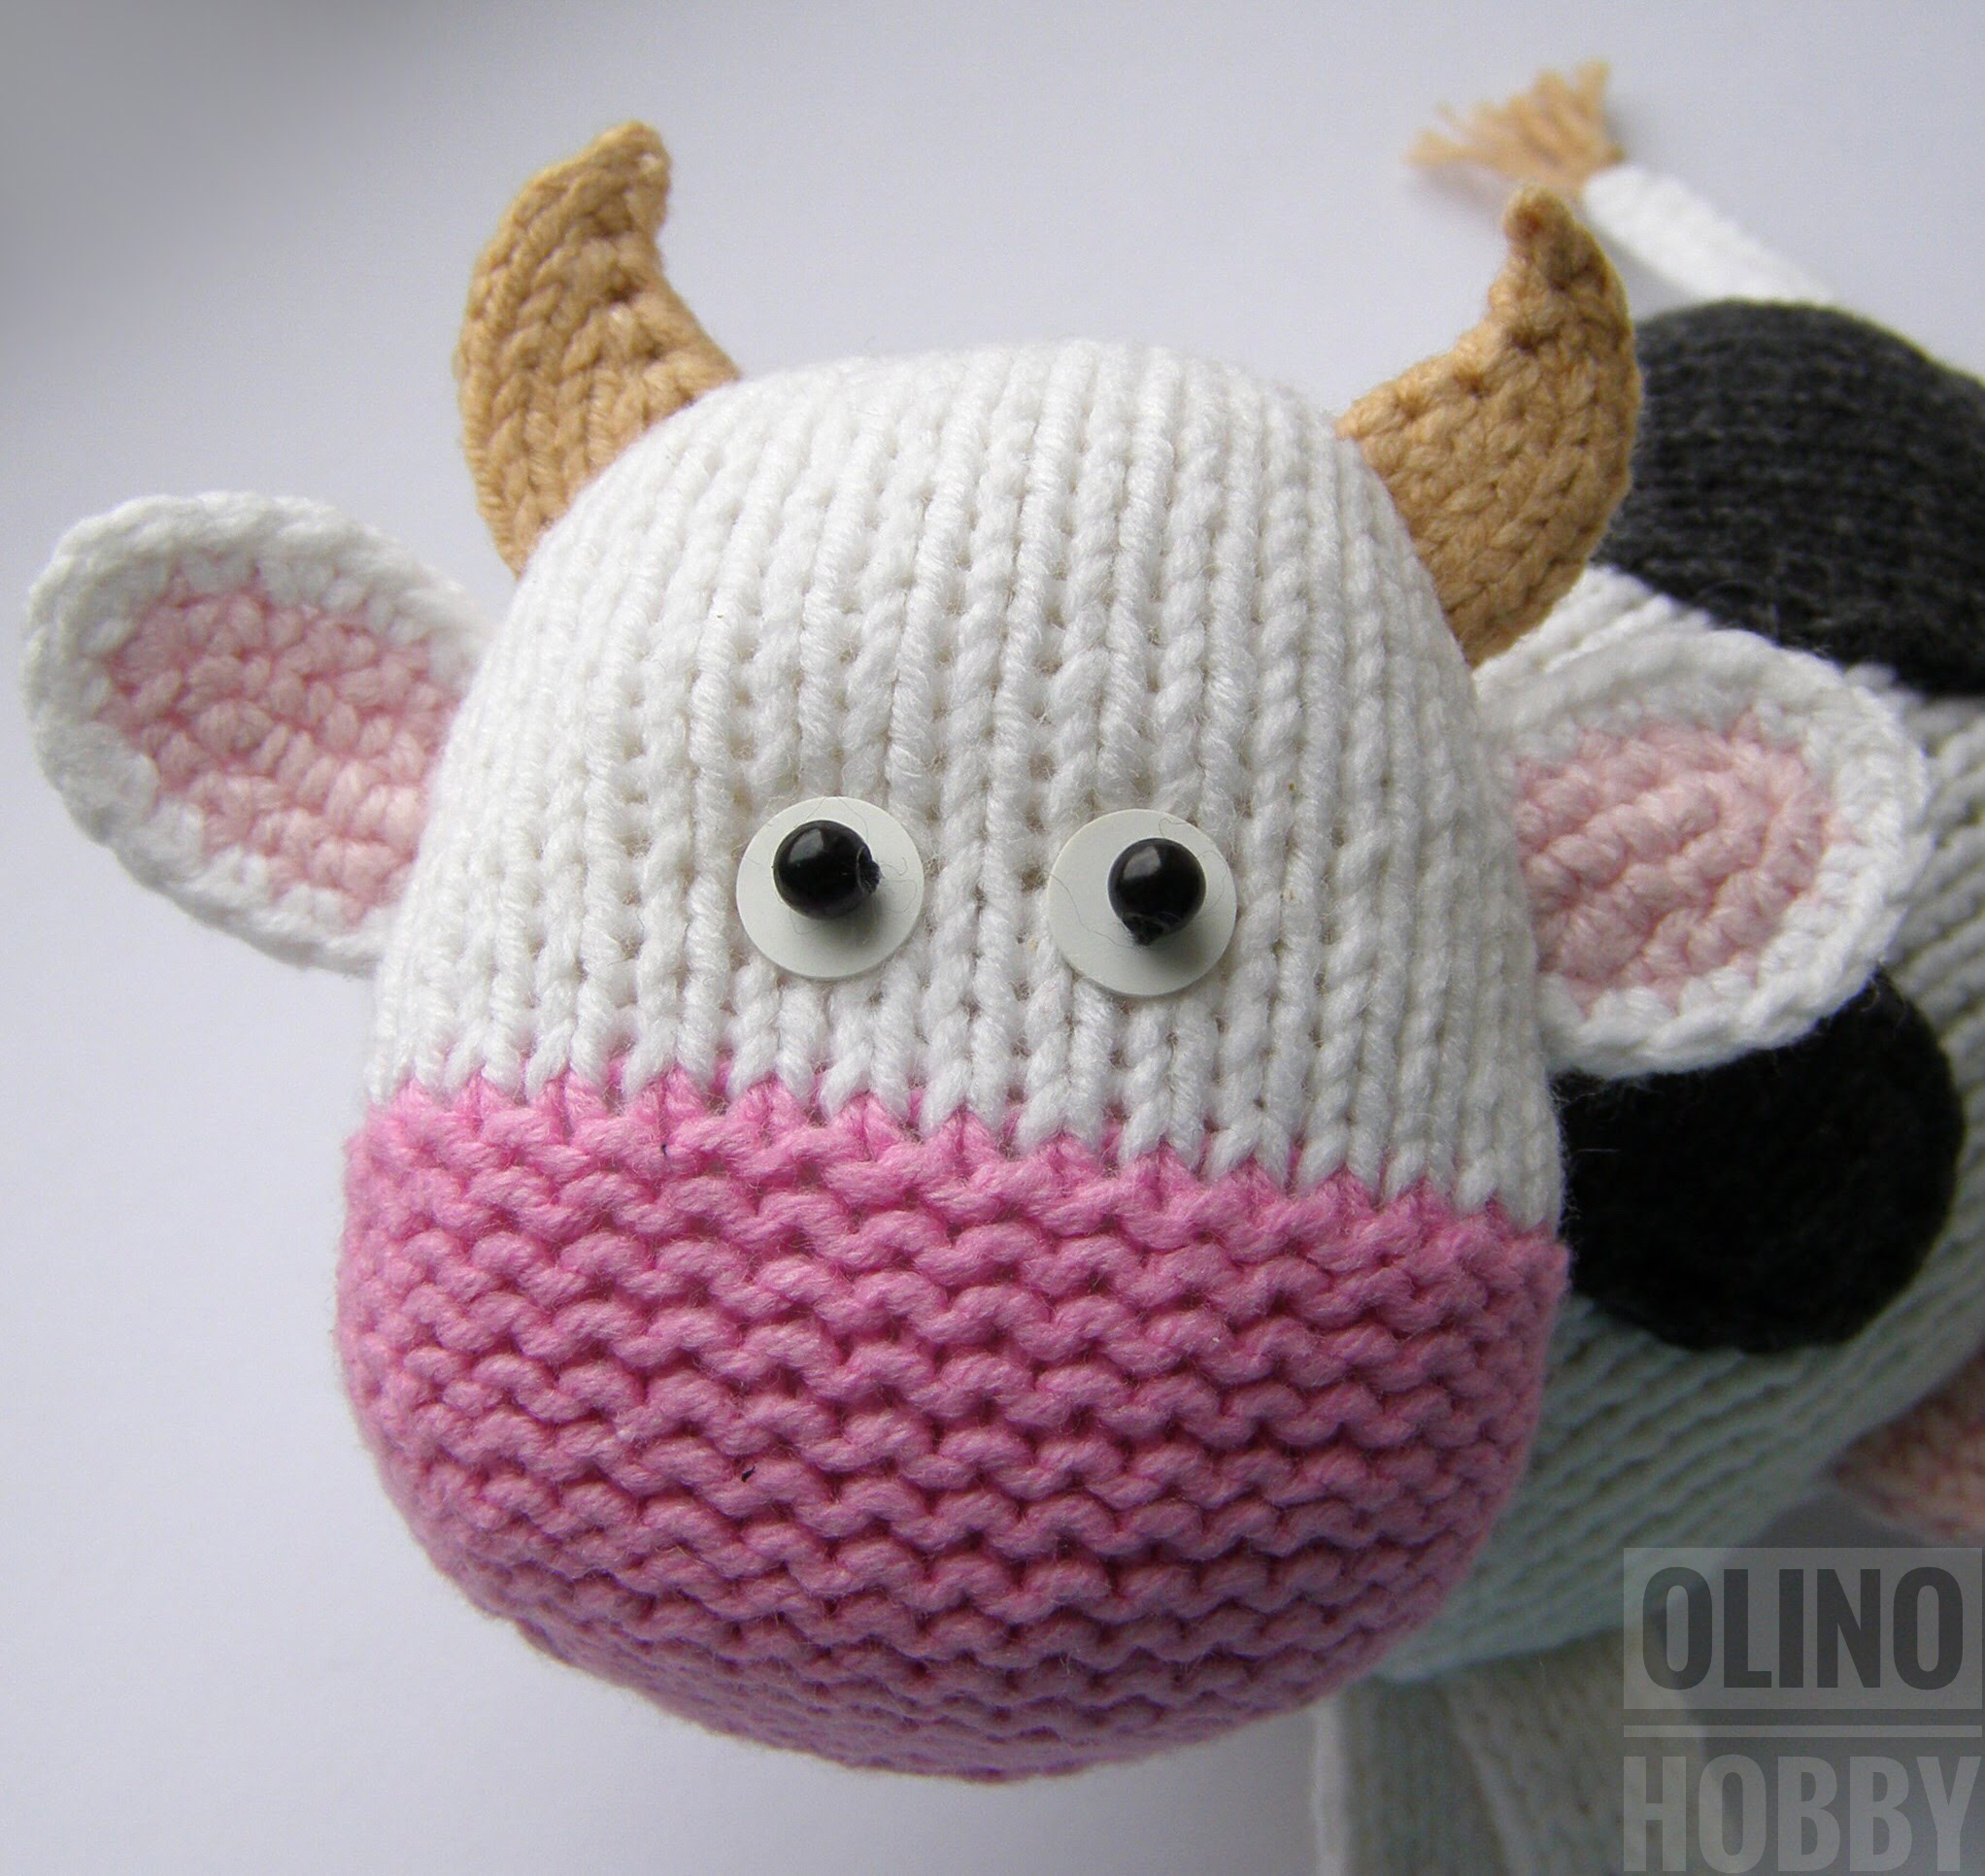 Knitting pattern Cow $4.99